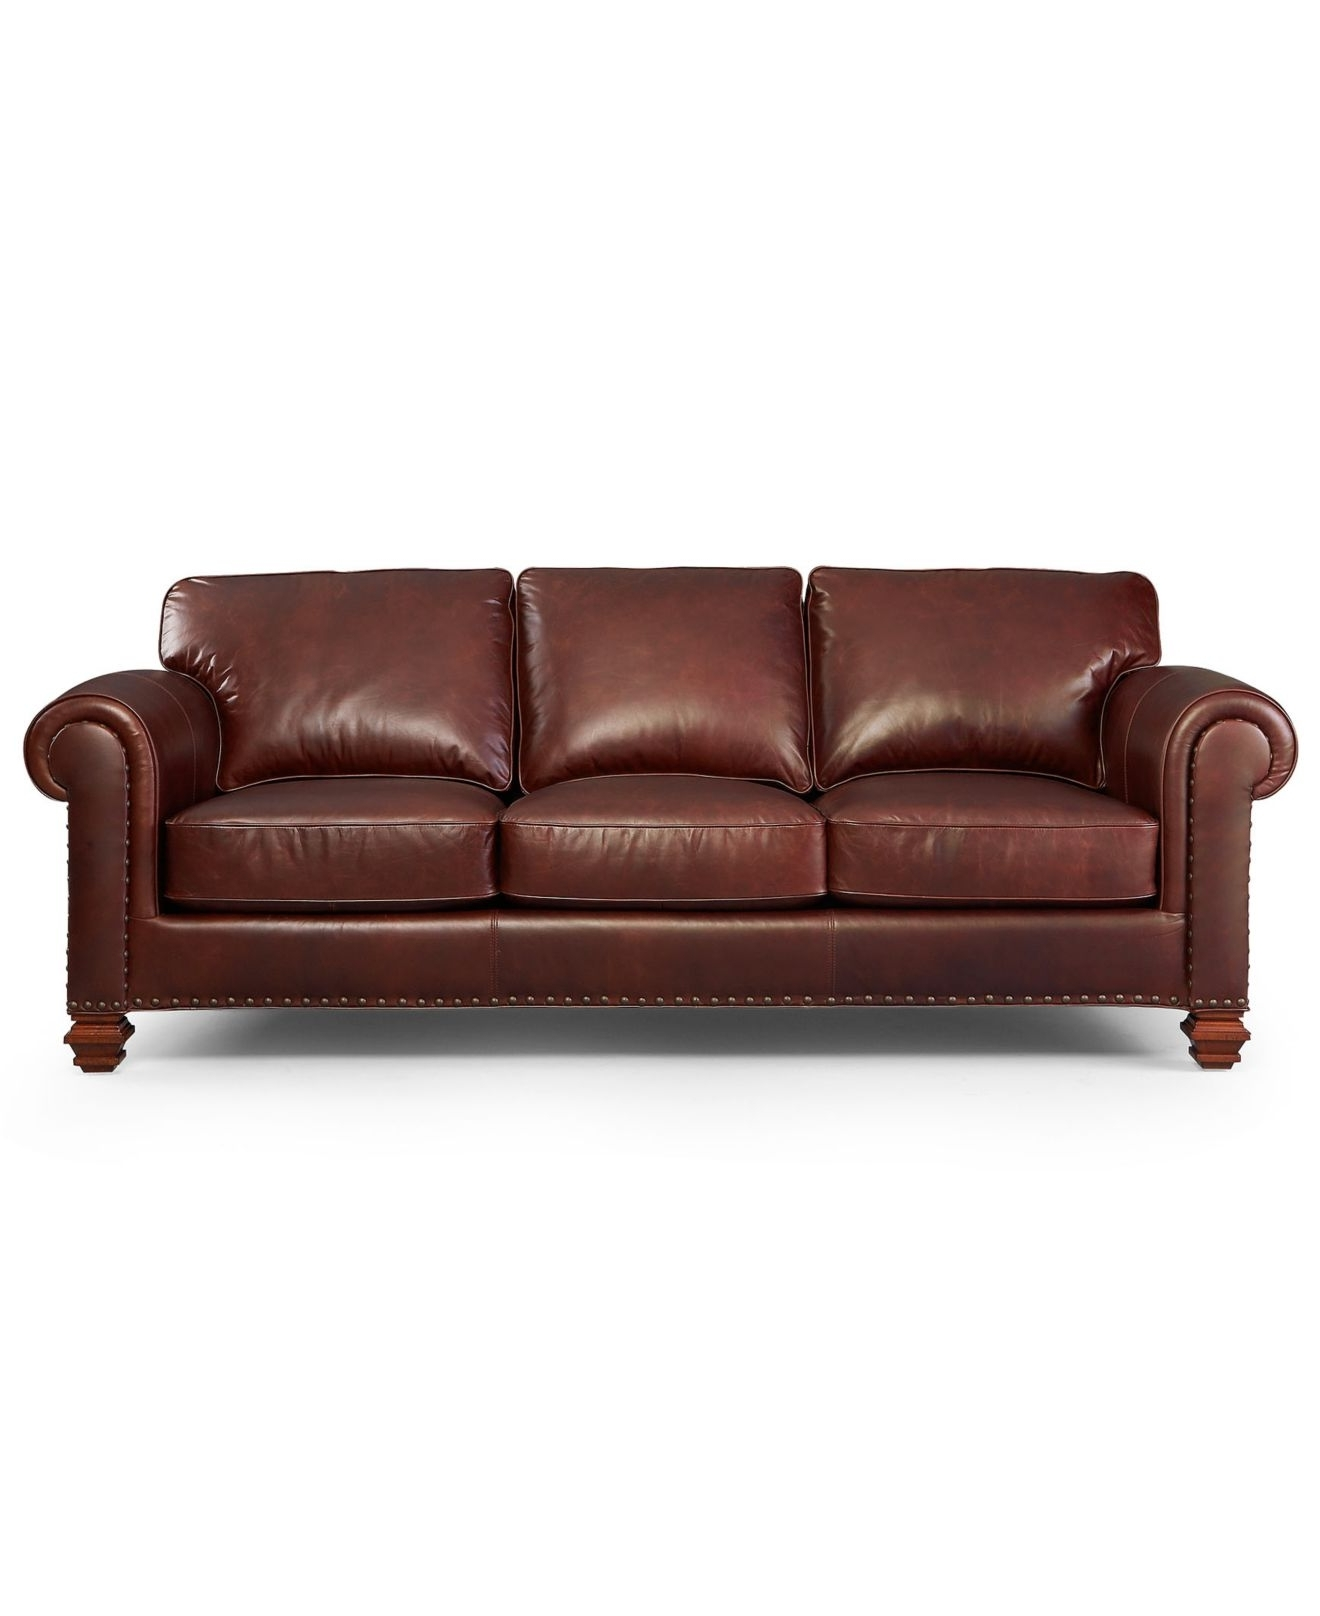 Lauren Ralph Lauren Leather Sofa, Stanmore – Living Room Furniture For Recent Macys Leather Sofas (View 7 of 20)